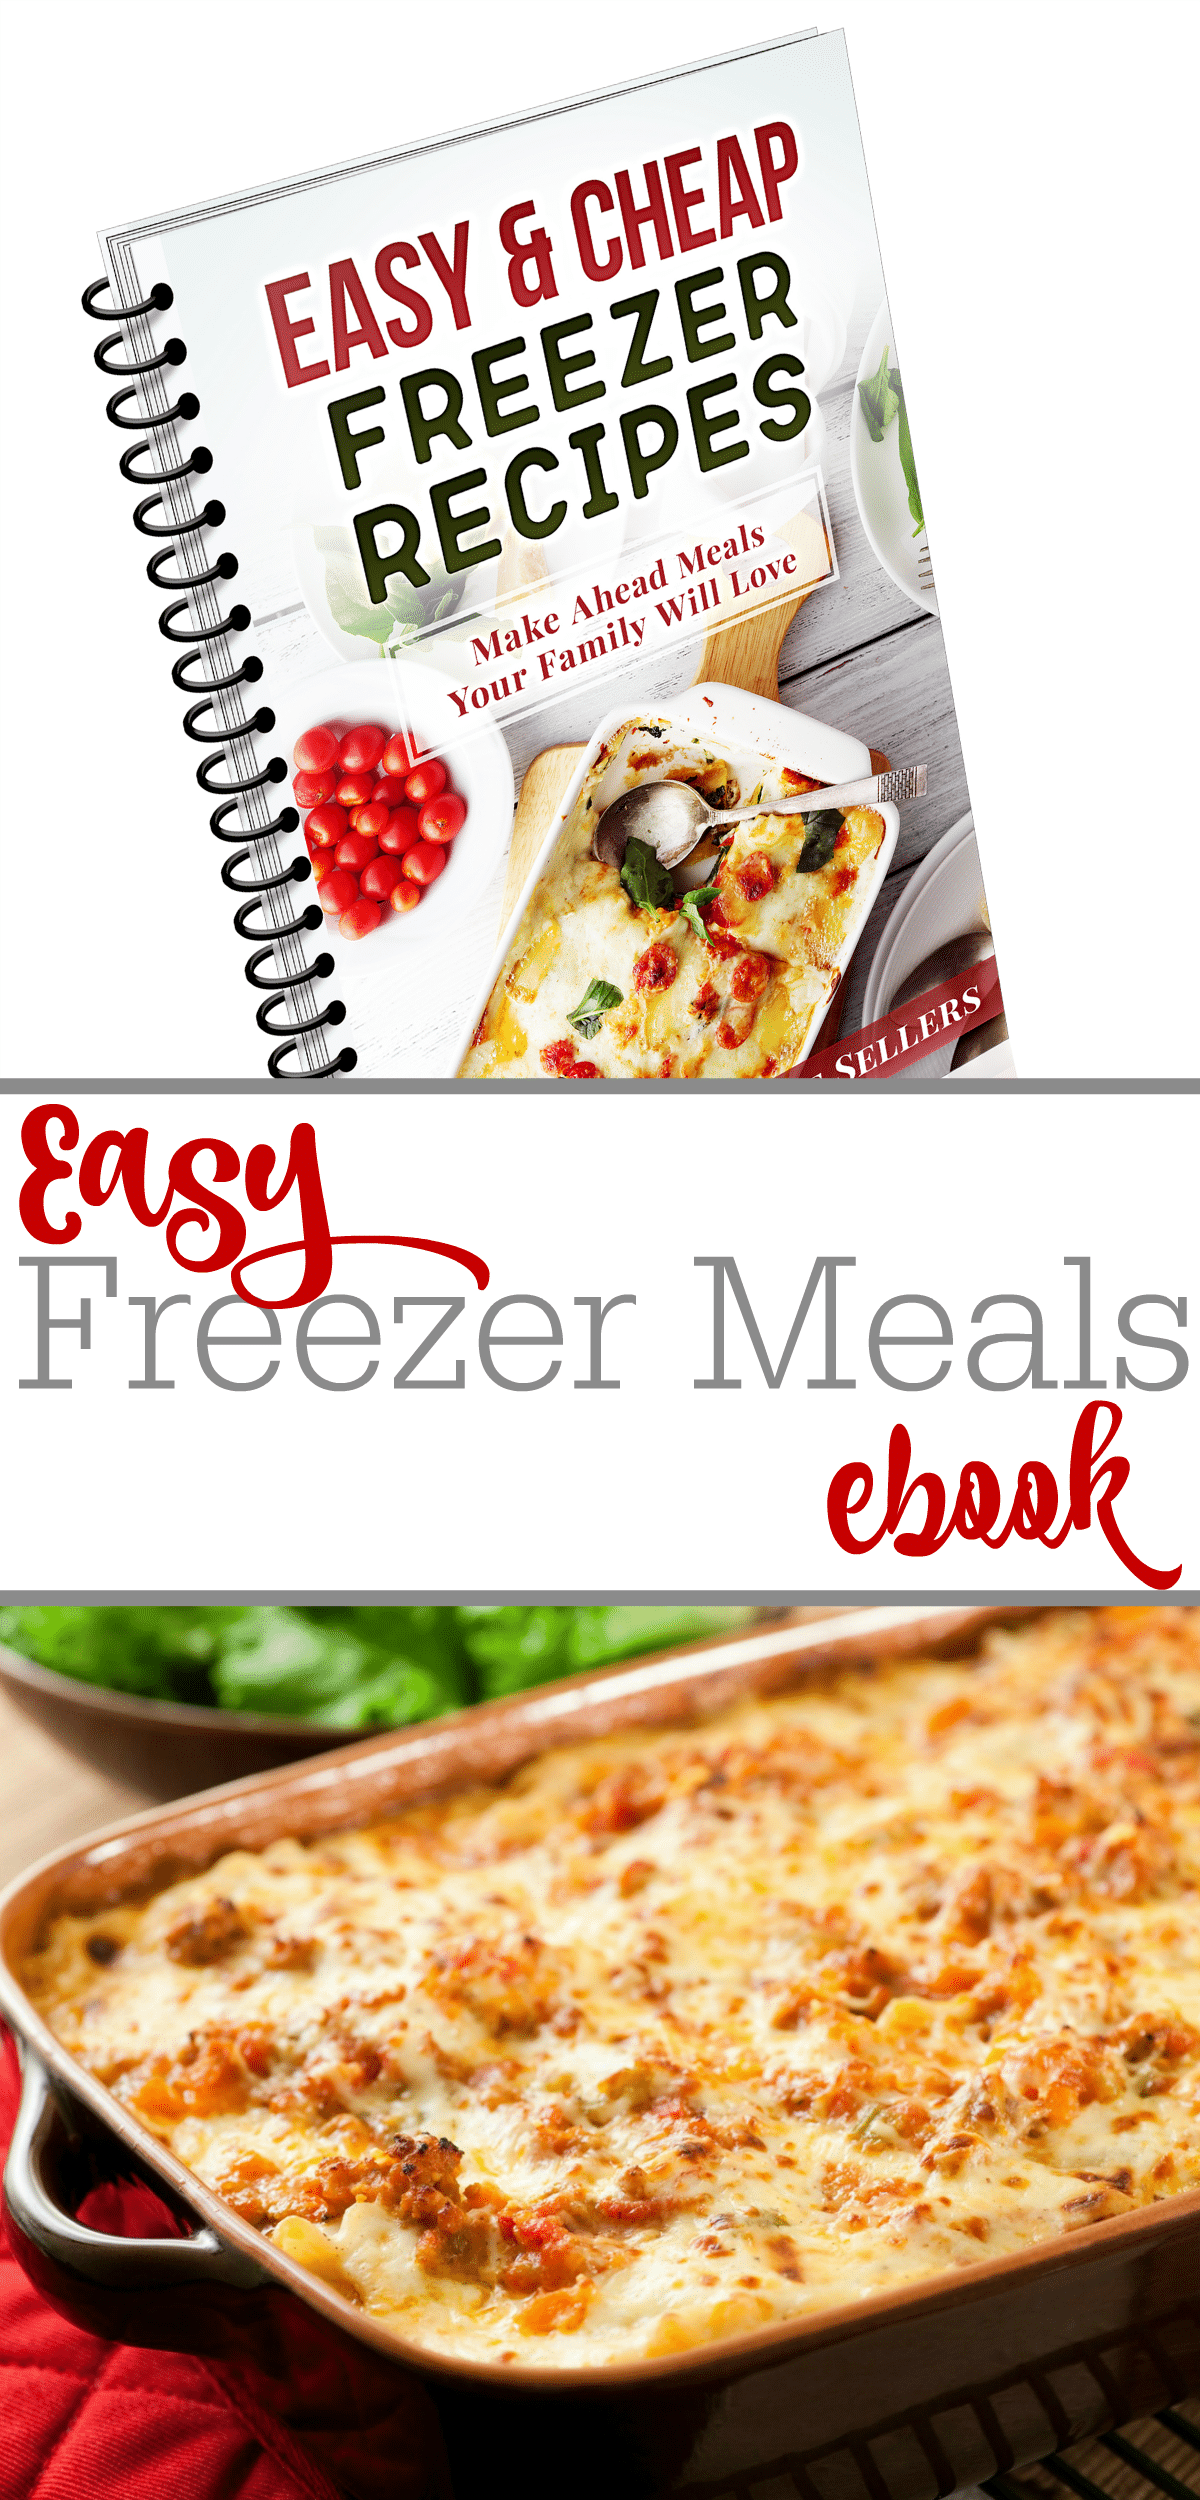 Super Easy Slow Cooker. Everything about using a slow cooker to make easy meals for the family. But we have also really enjoyed making things even easier by using $5 Meal viraltips.ml make meal planning as simple as possible, a huge time saver!